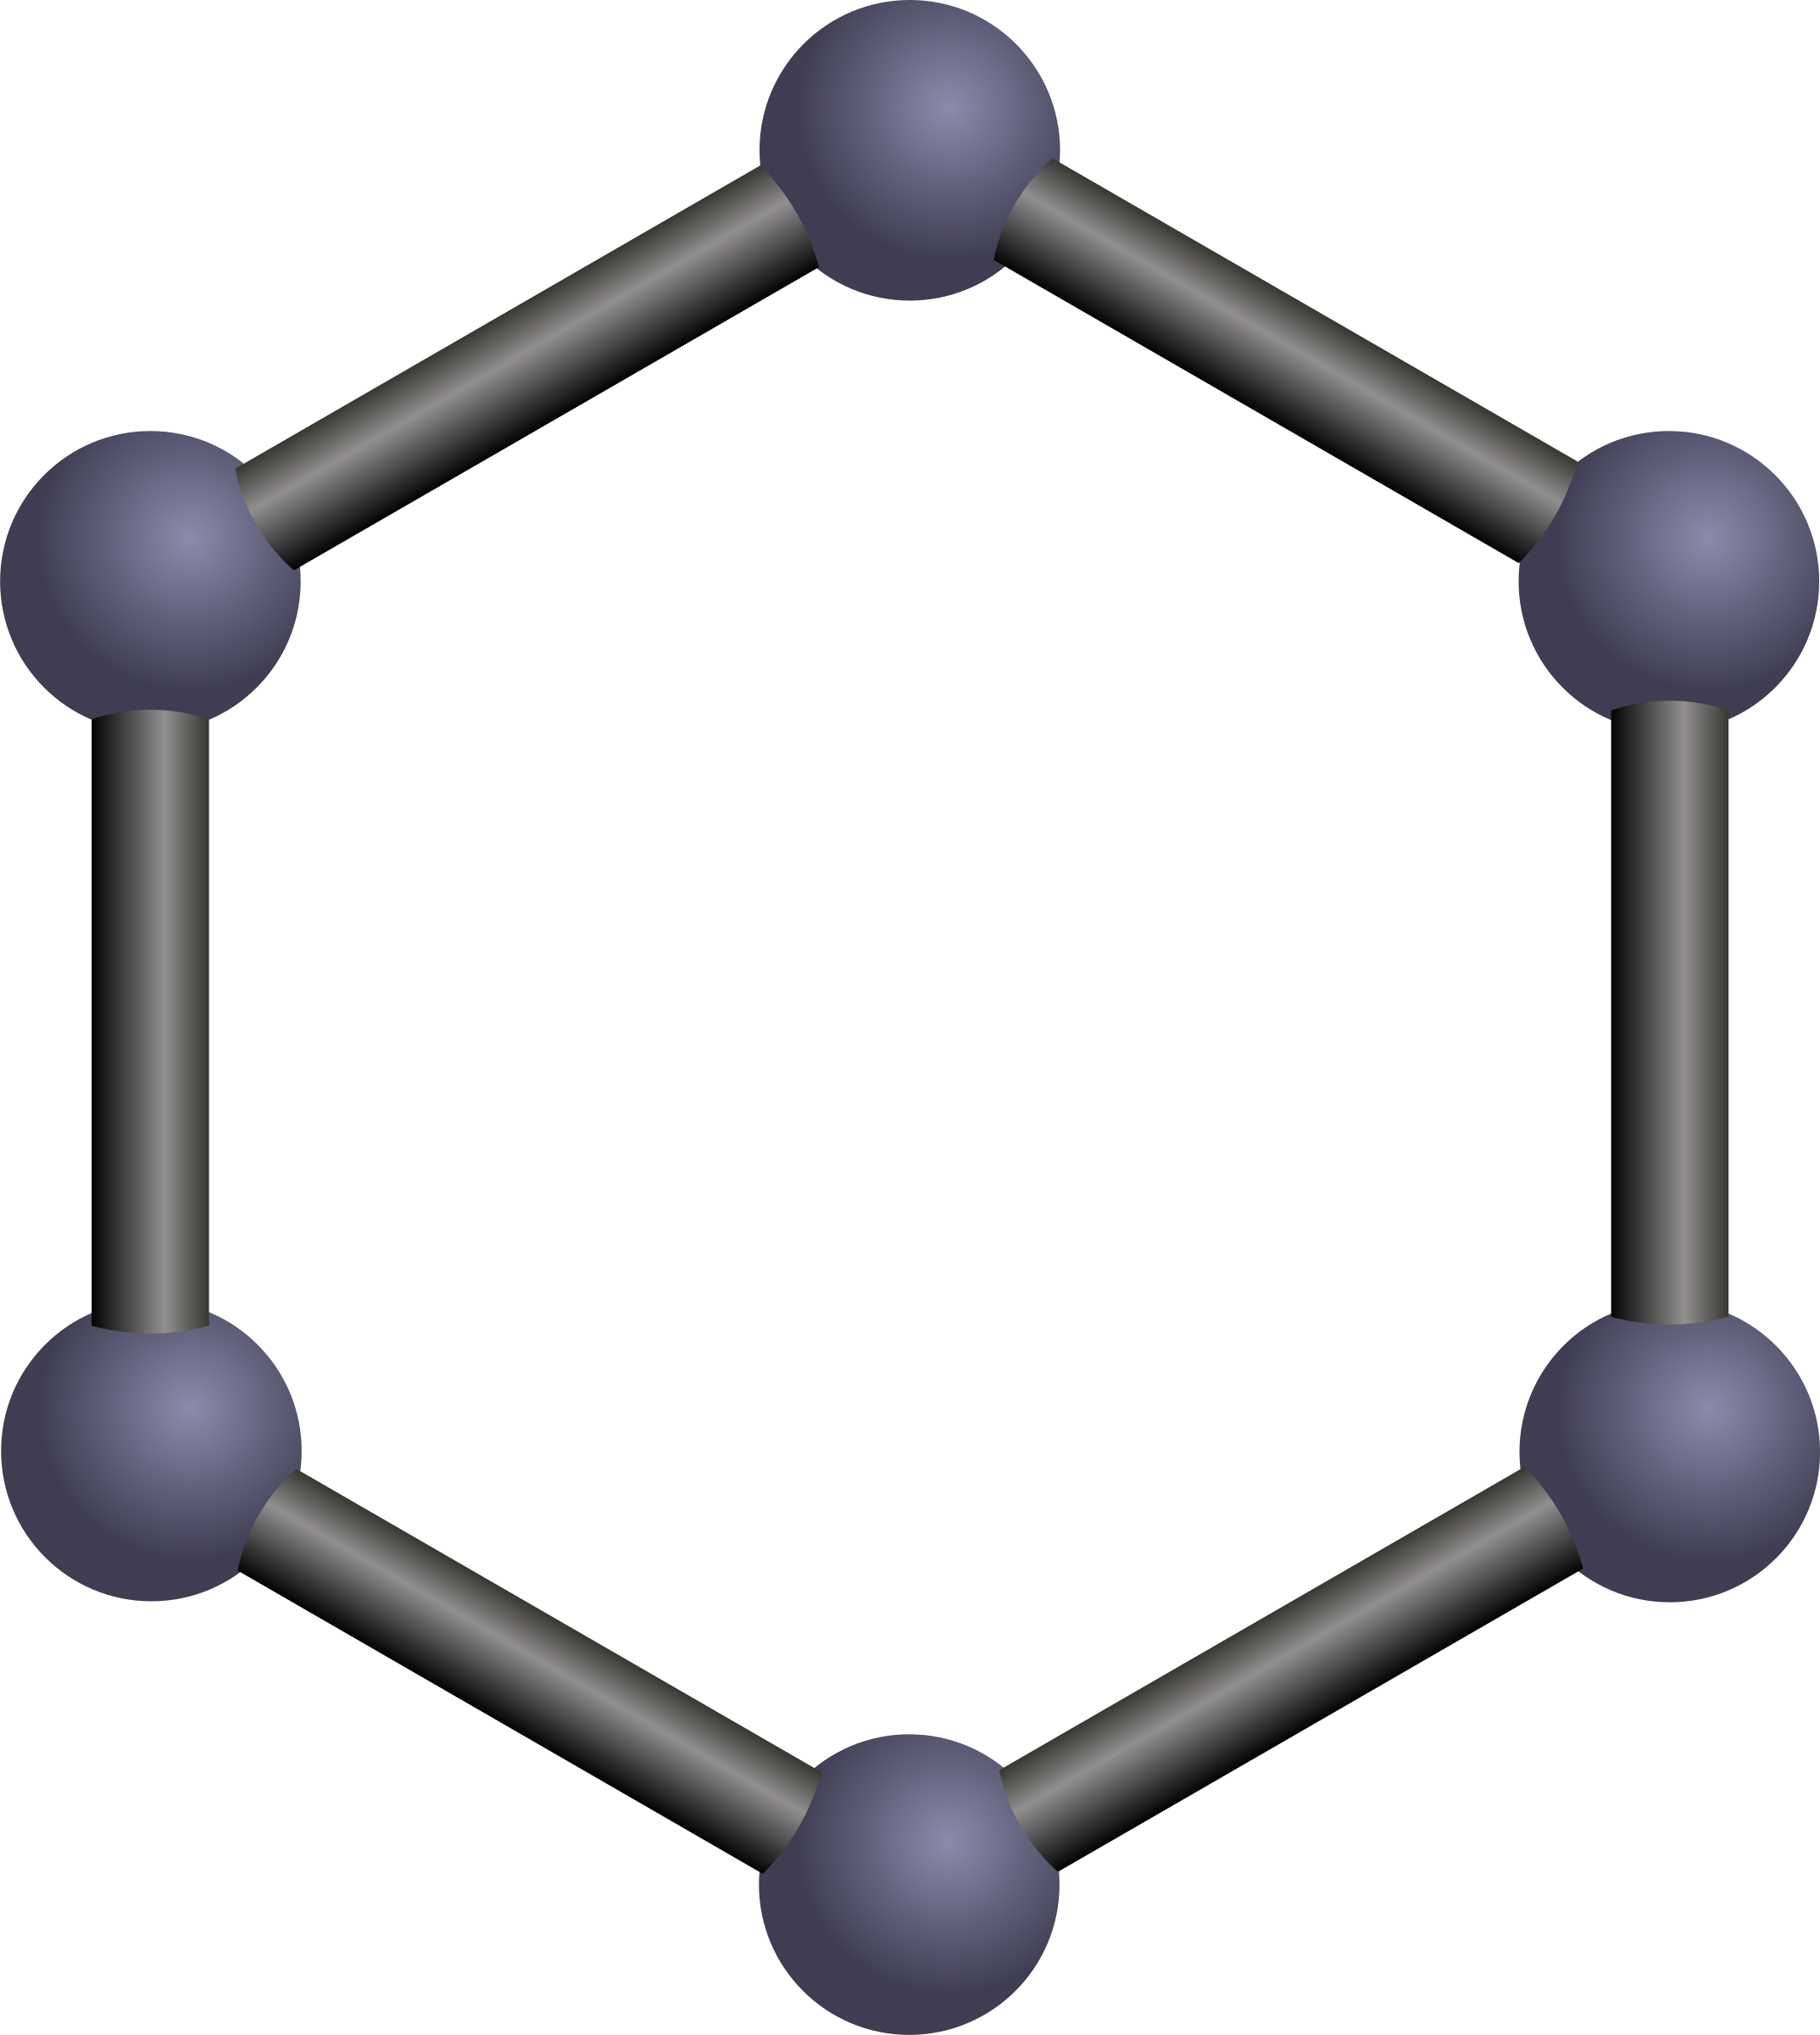 Benzene ring by J_Alves